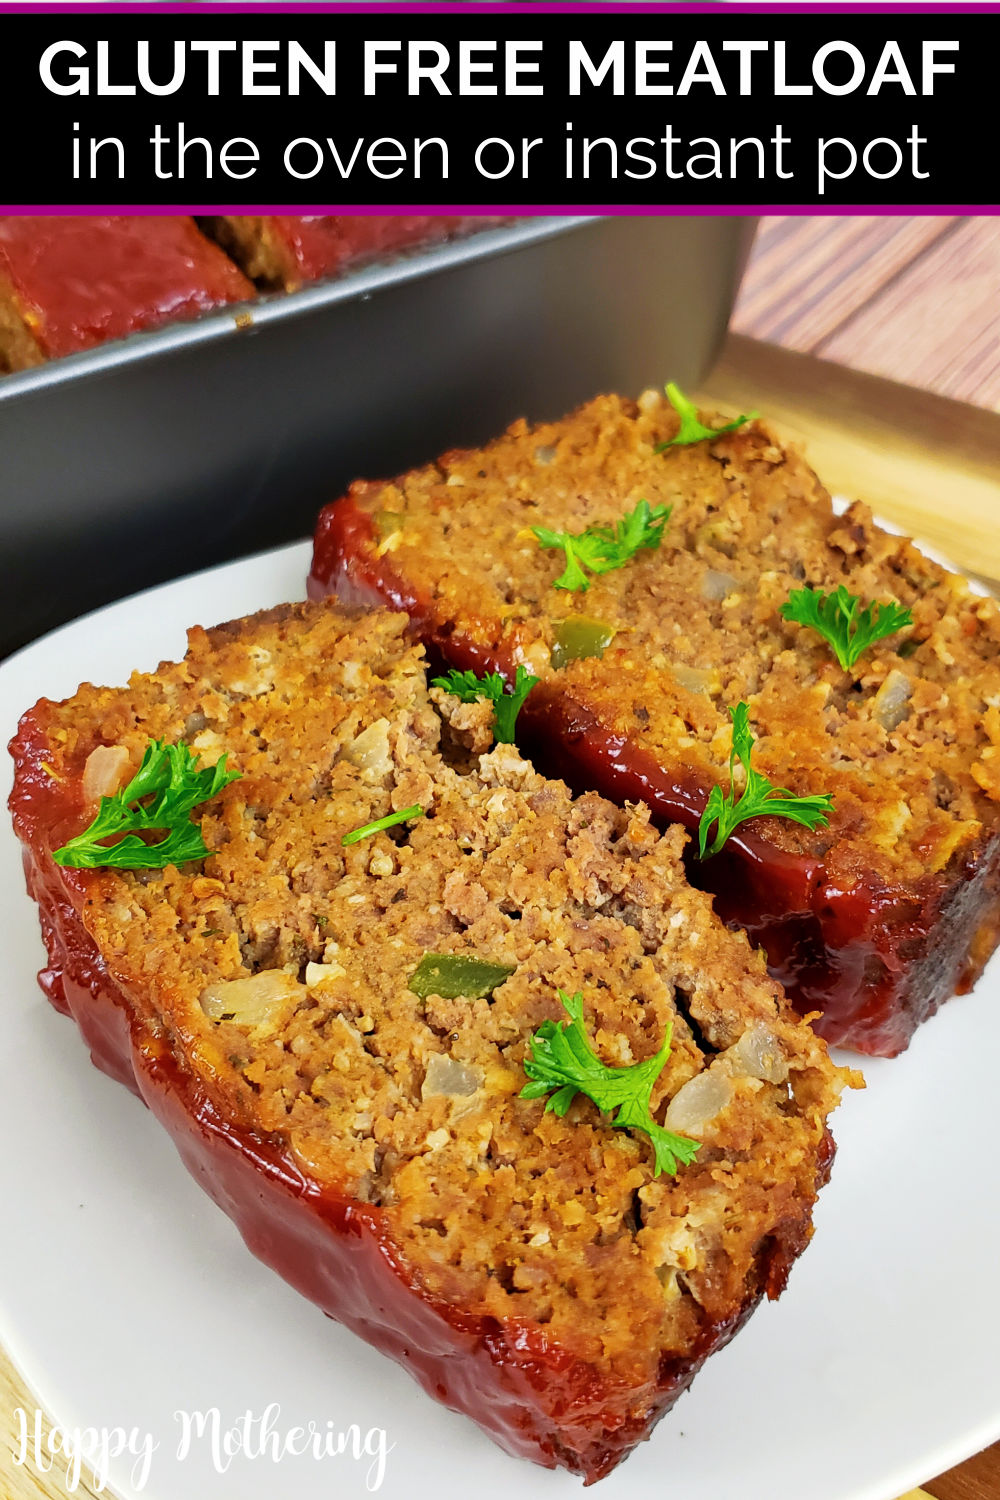 2 slices of gluten free meatloaf on a plate next to the loaf pan on the table.